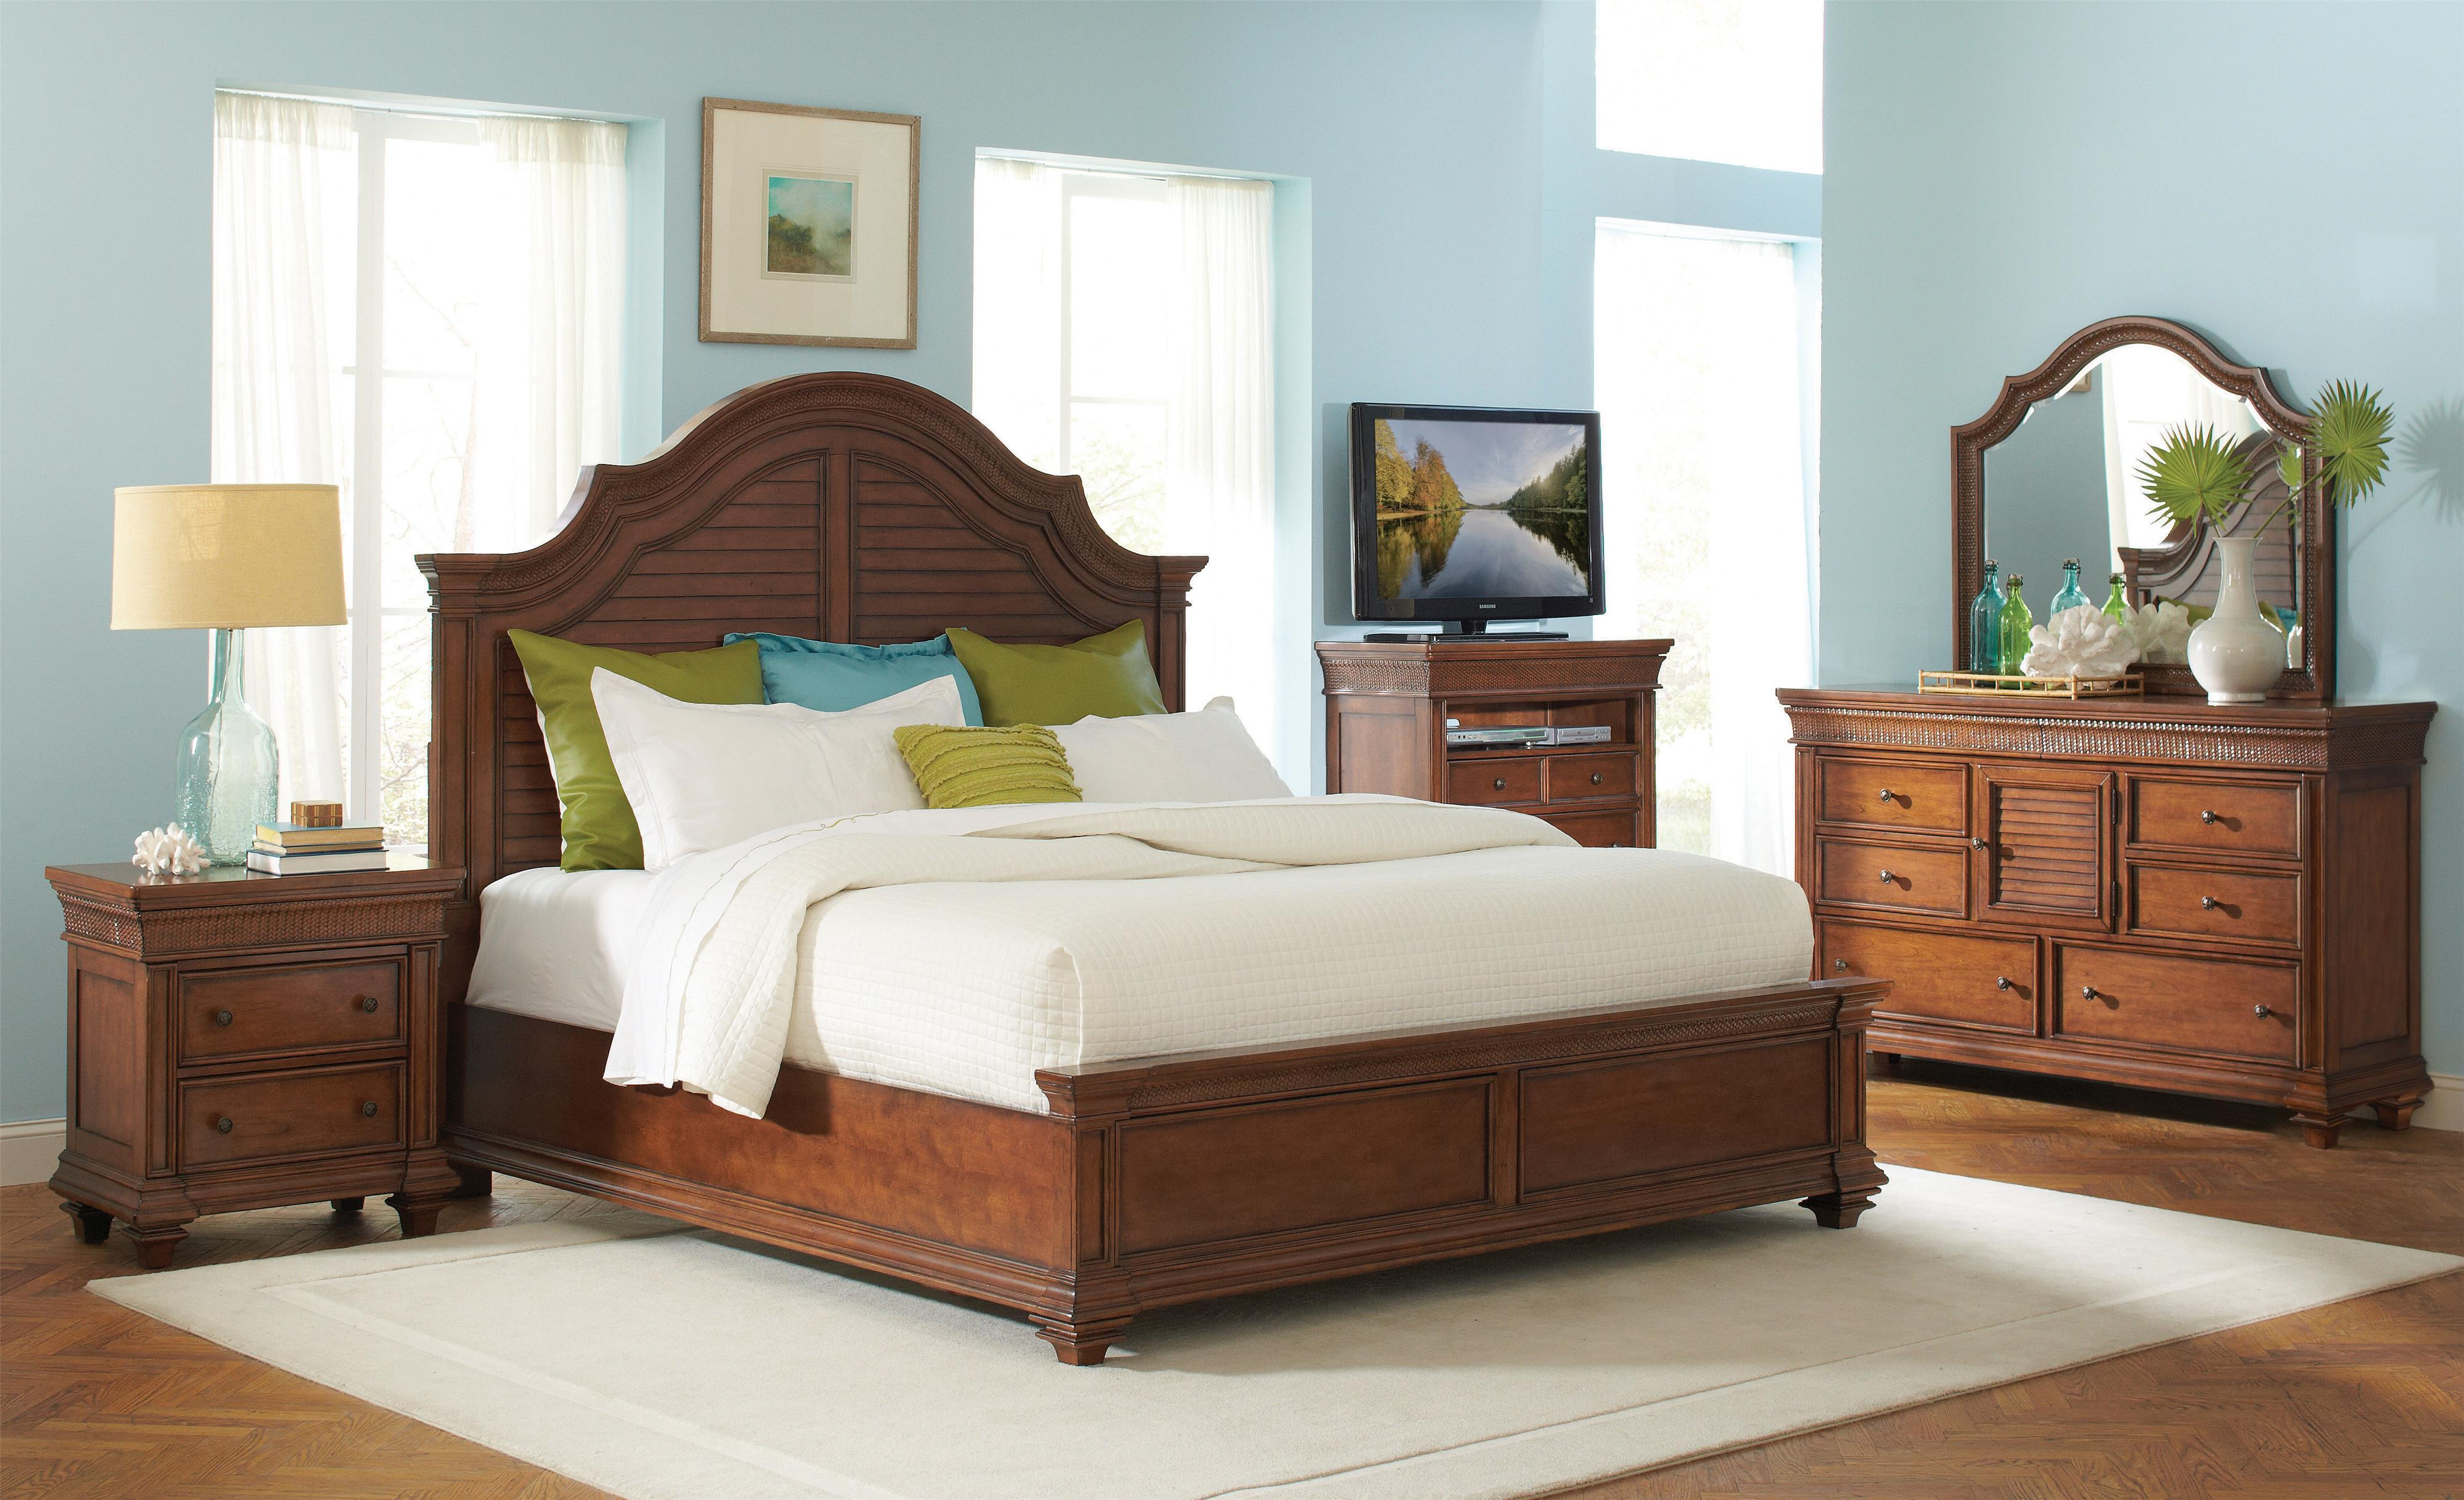 Riverside Furniture Windward Bay King Bedroom Group - Item Number: 428 K Bedroom Group 1